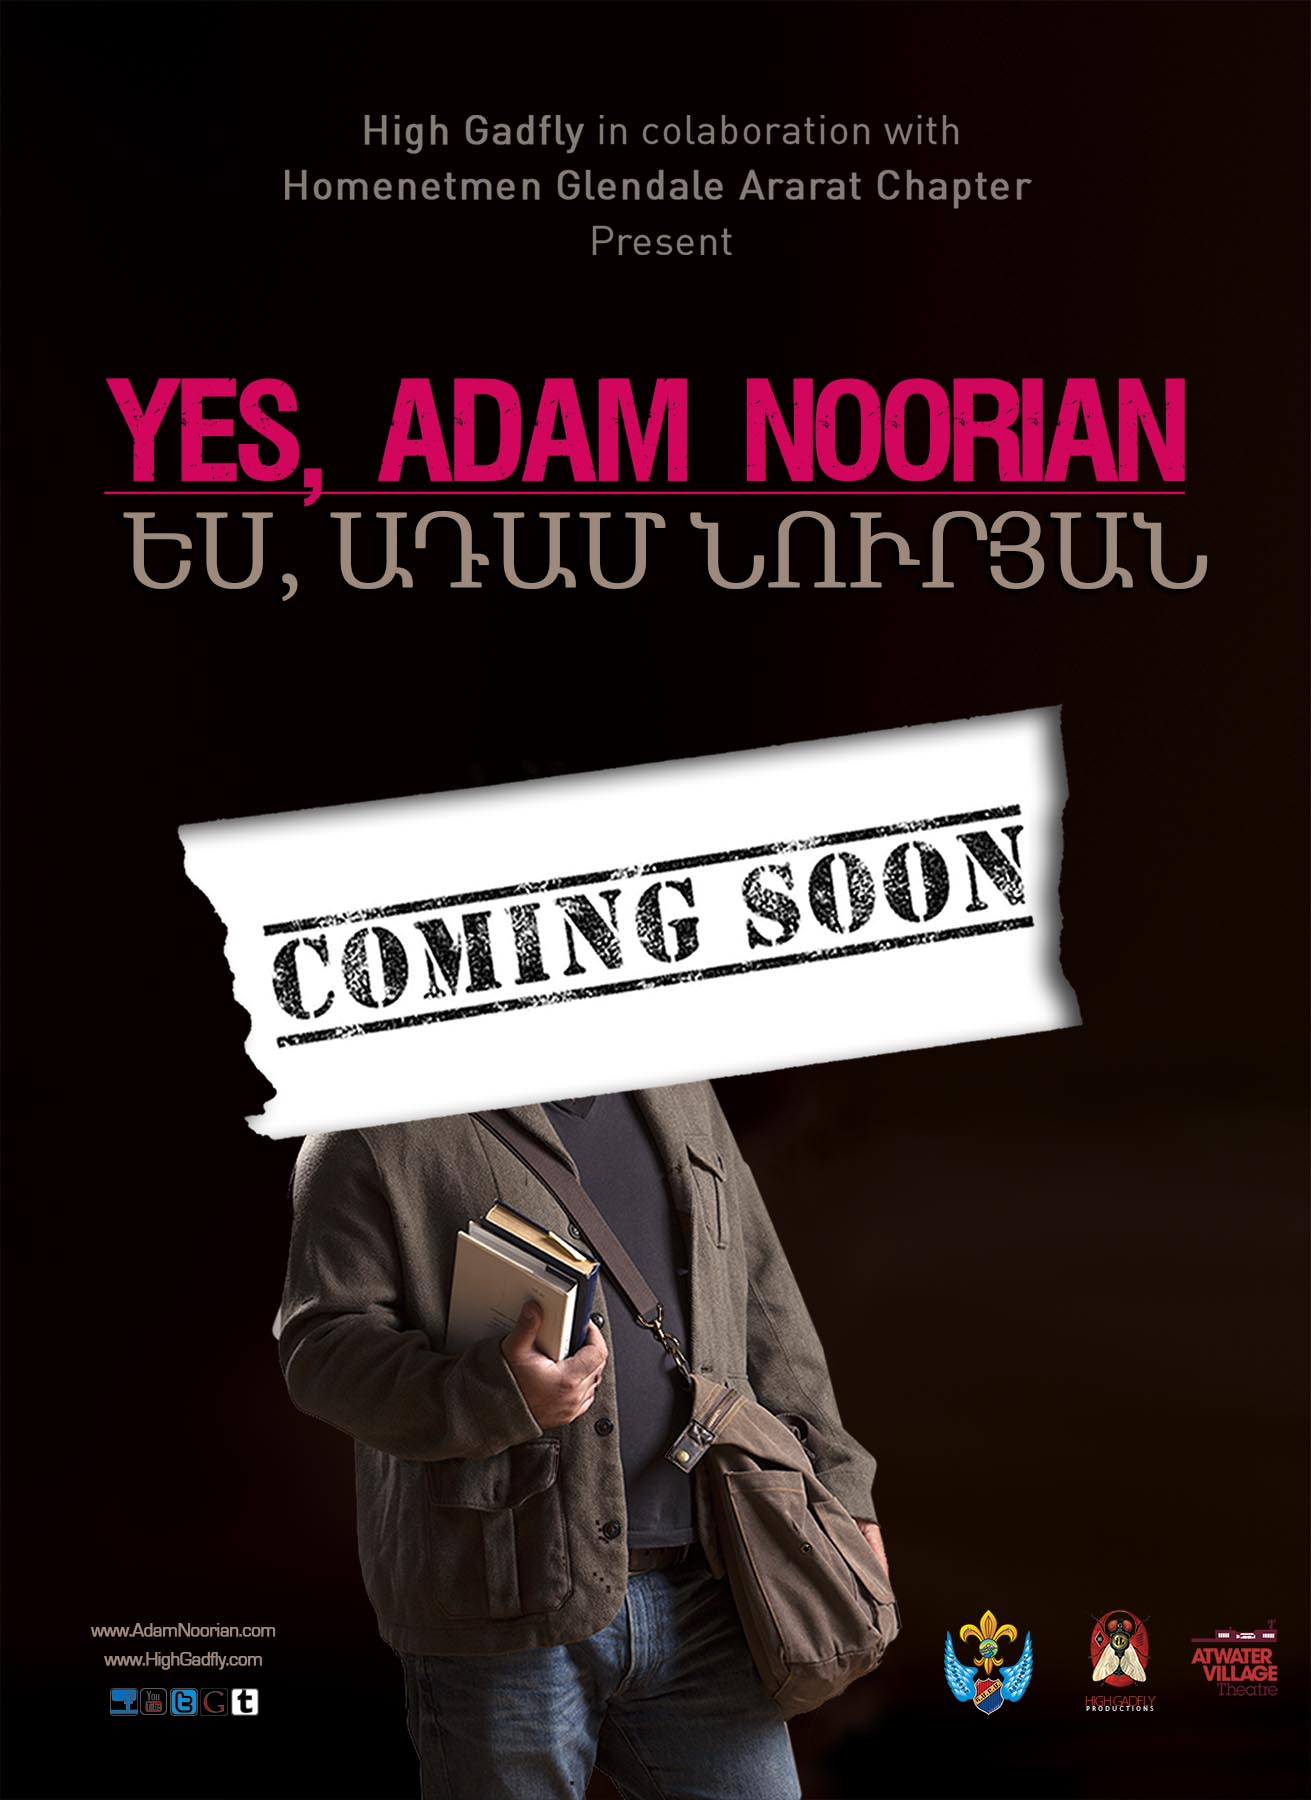 Yes, Adam Noorian